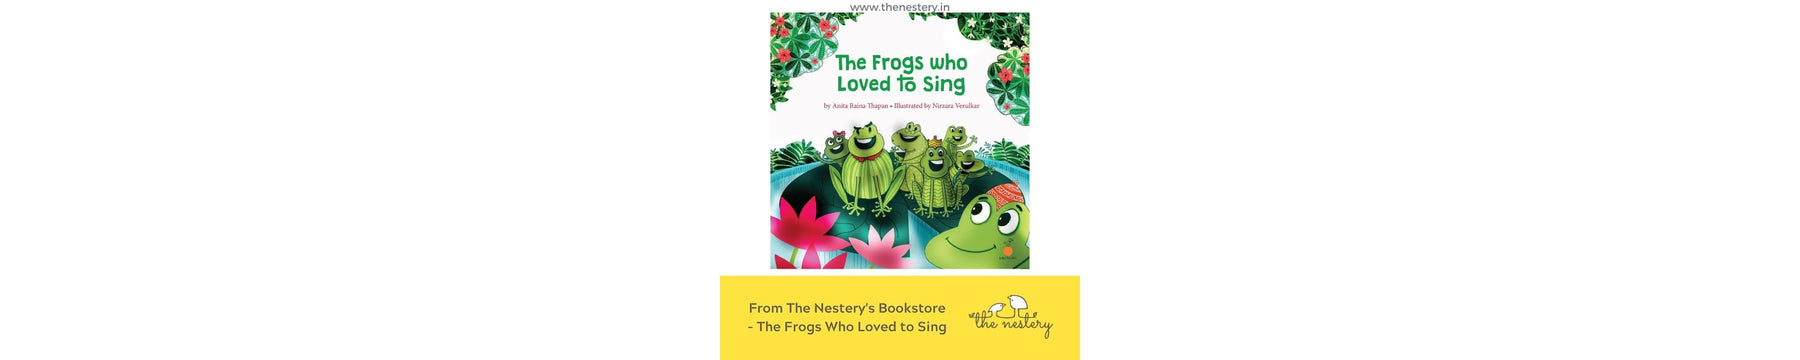 Book Review - The Frogs Who Loved to Sing